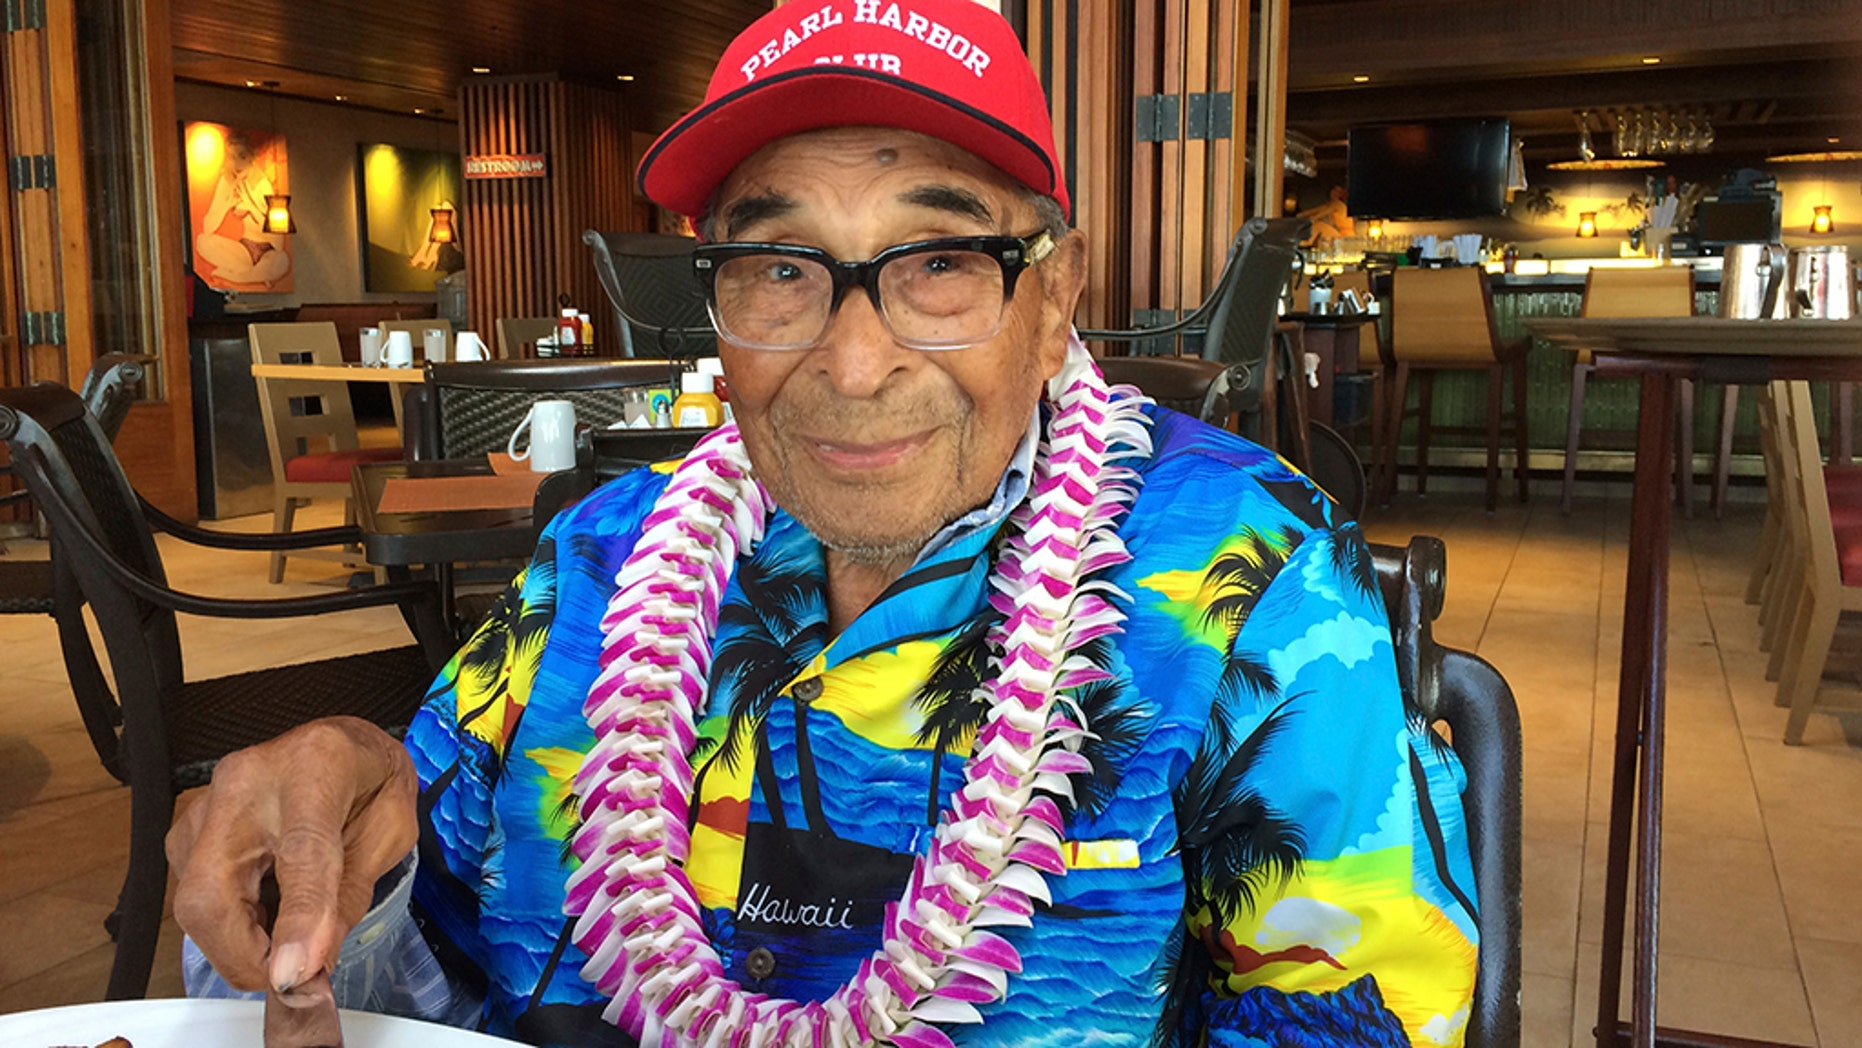 In this Dec. 5, 2016, photo, Ray Chavez, a Pearl Harbor survivor from Poway, California, pauses while eating breakfast in Honolulu. Chavez was out on a minesweeper, the Condor, before the attack. Chavez is among a few dozen survivors of the Japanese attack on Pearl Harbor who planned to gather at the Hawaii naval base two days later to remember those killed 75 years earlier. (AP Photo/Audrey McAvoy)